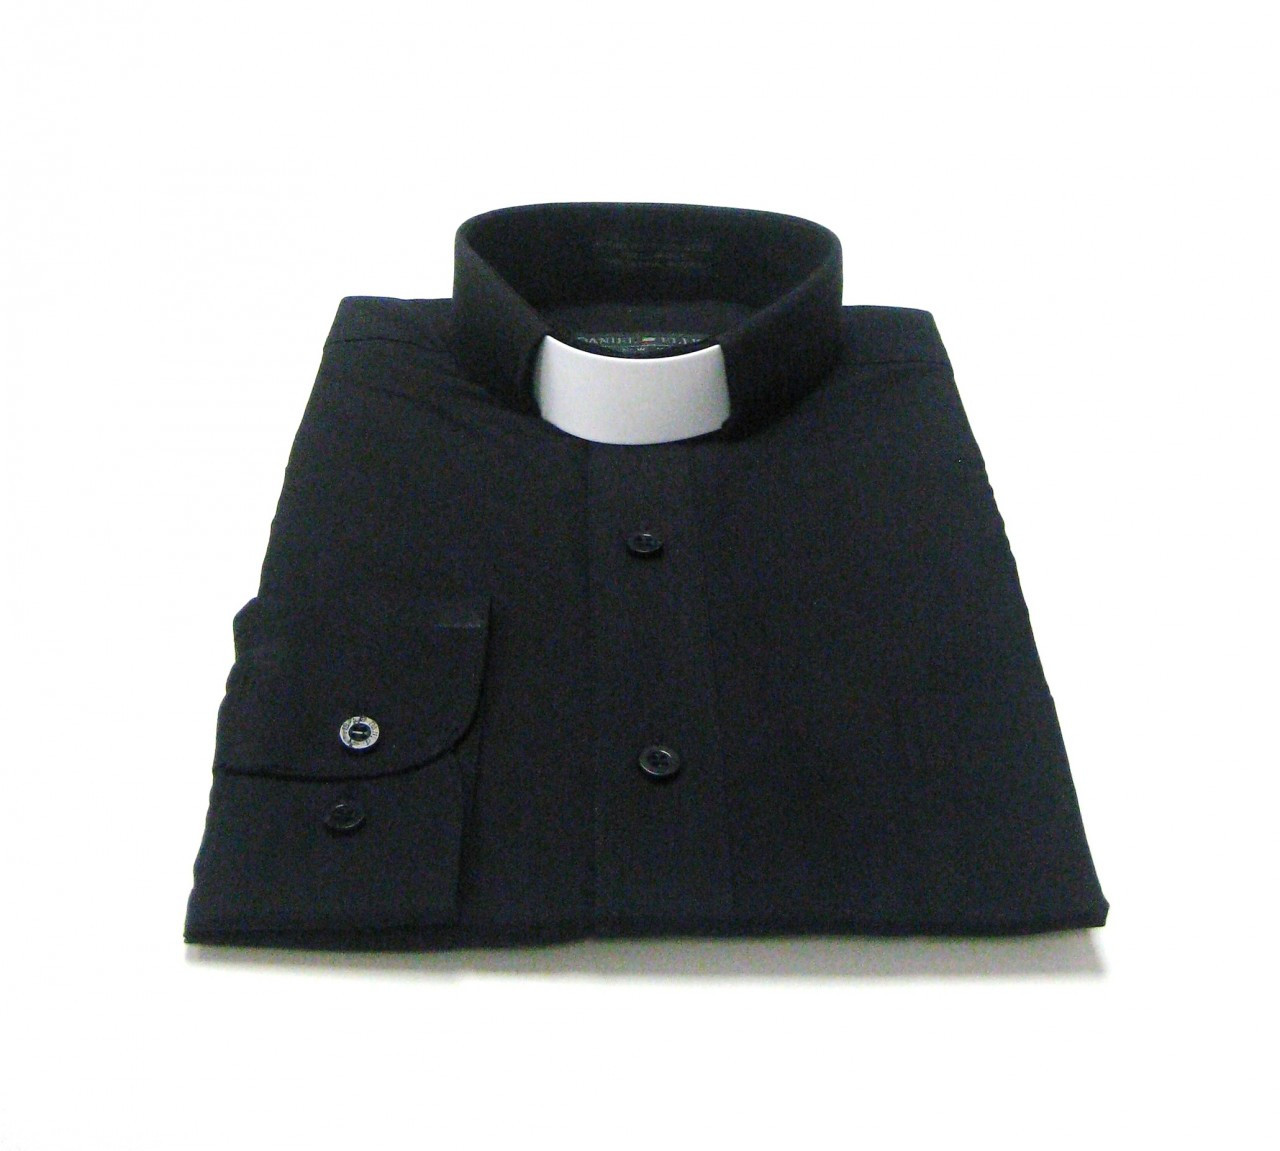 Tab Collar Clergy Shirt In 35 Colors From Divinityclergywear